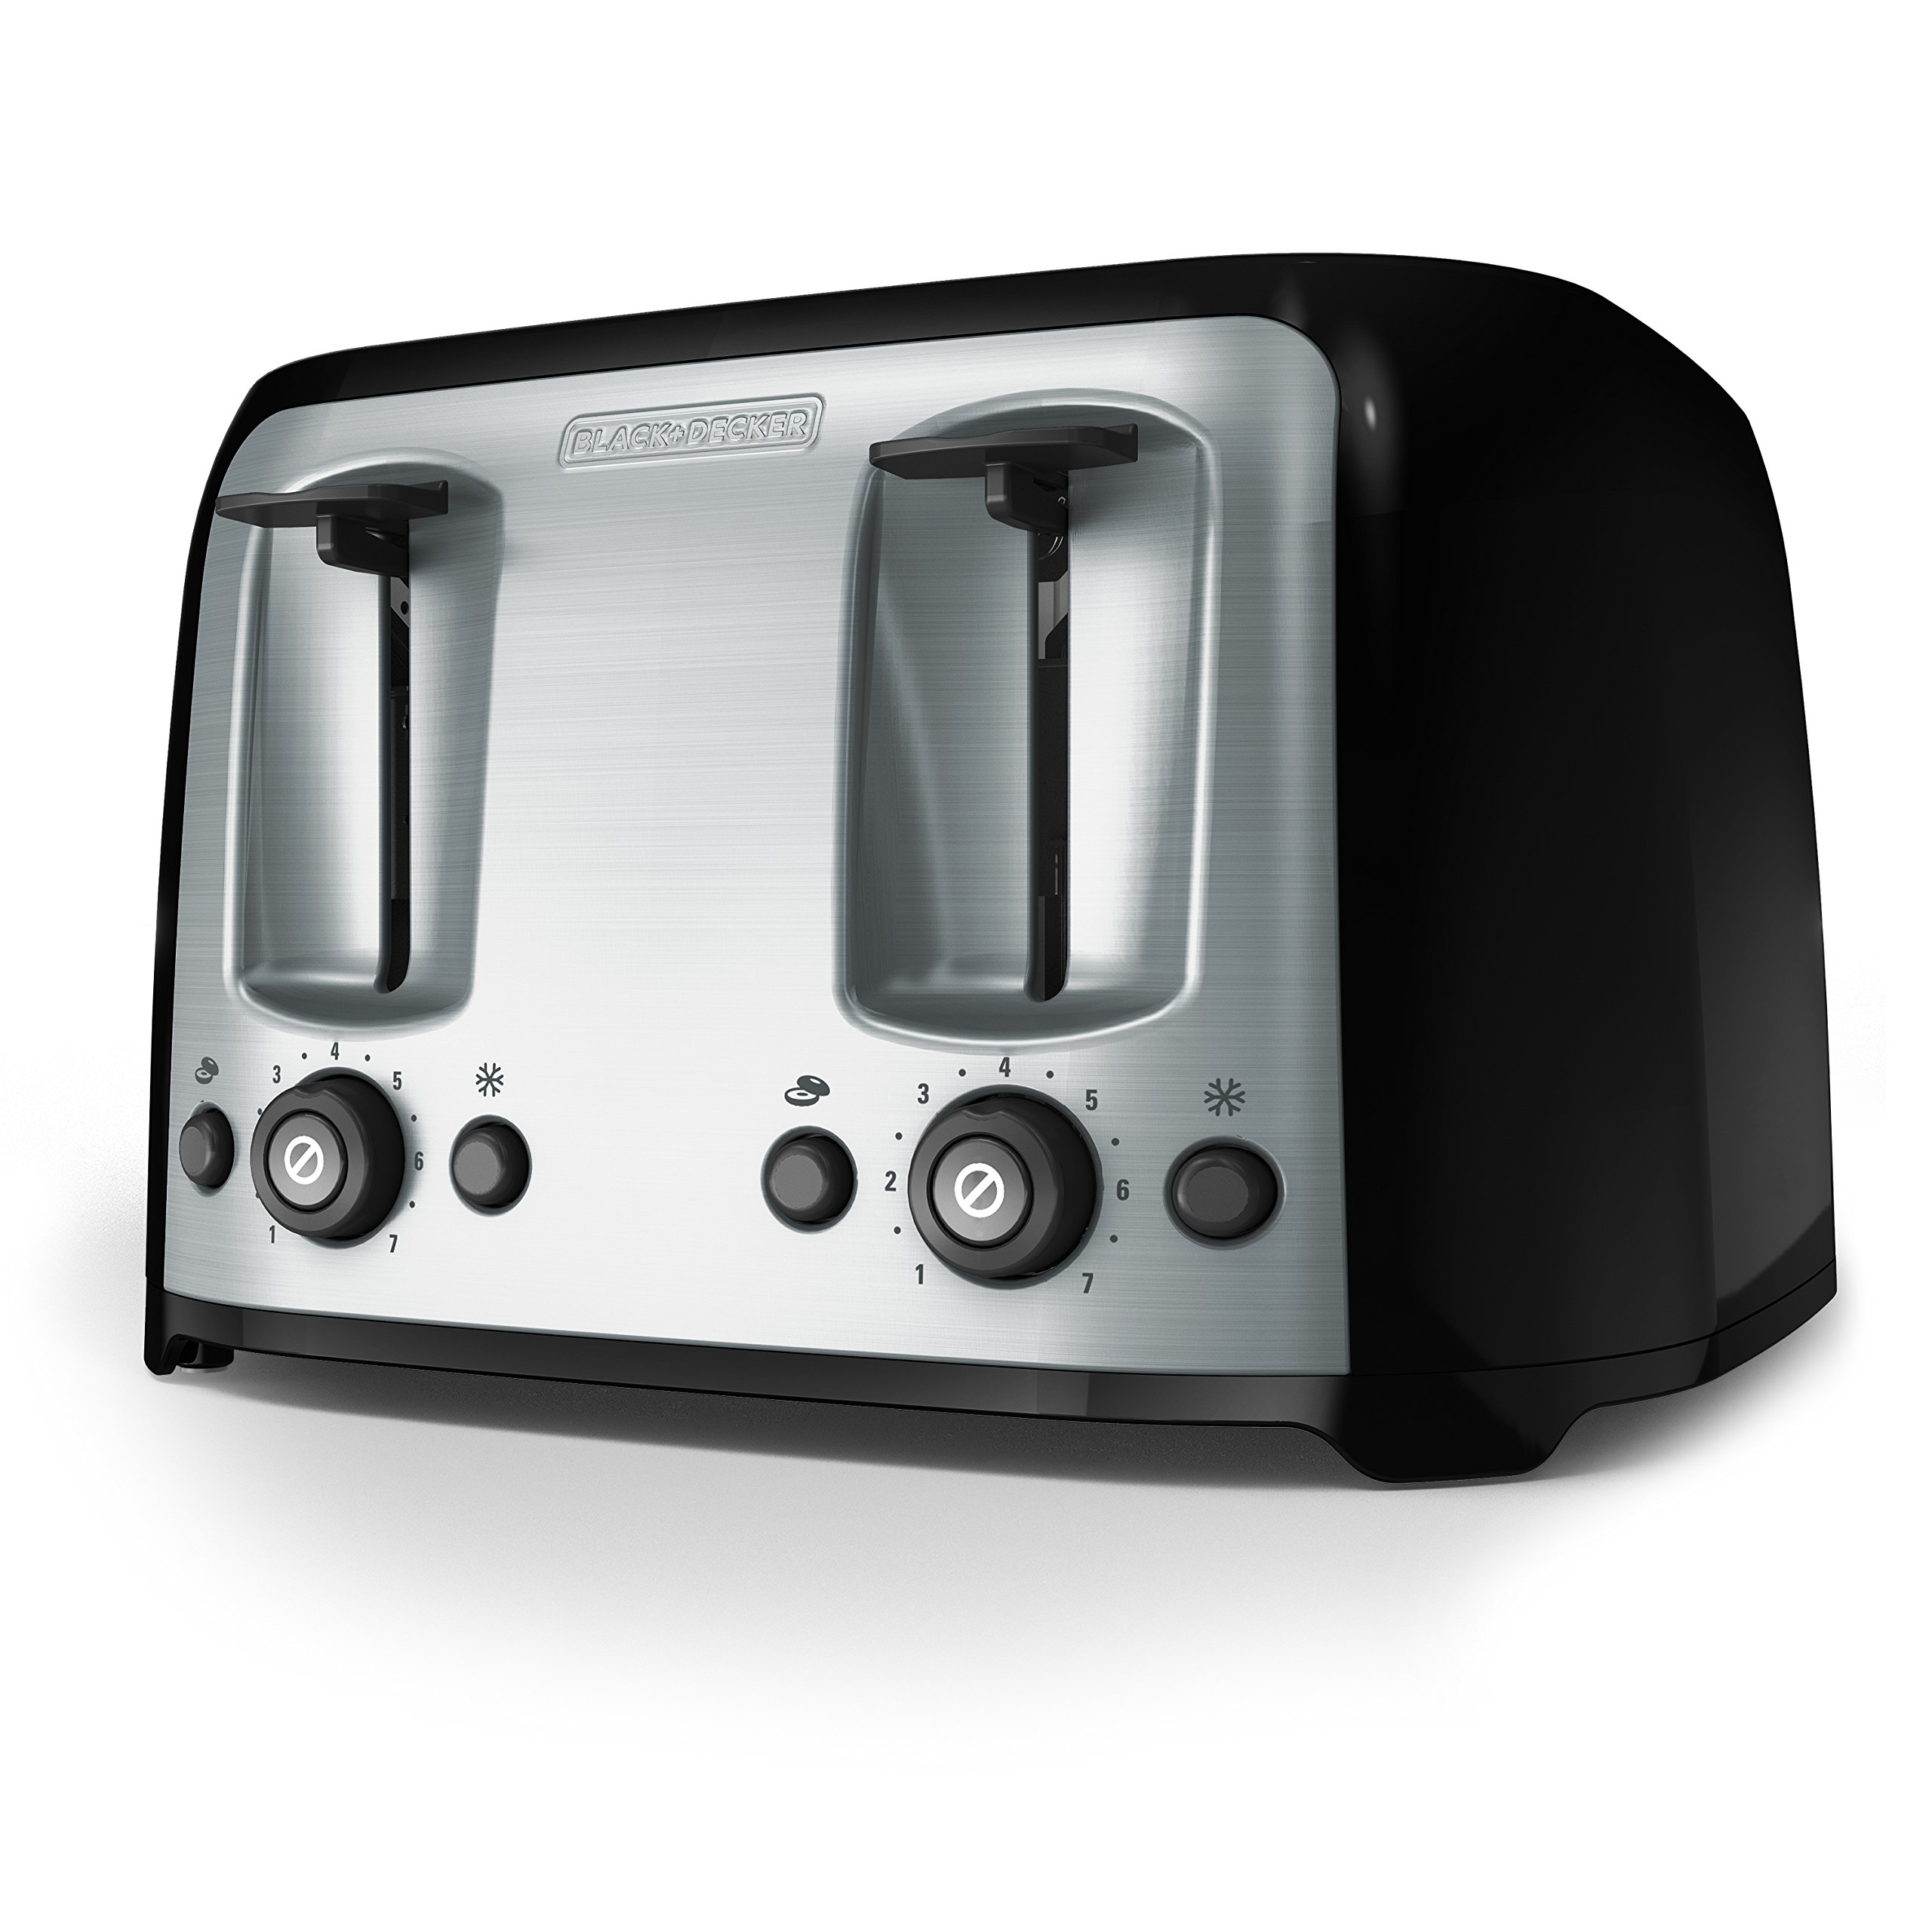 BLACK+DECKER 4-Slice Toaster, Classic Oval, Black with Stainless Steel Accents, TR1478BD by BLACK+DECKER (Image #1)